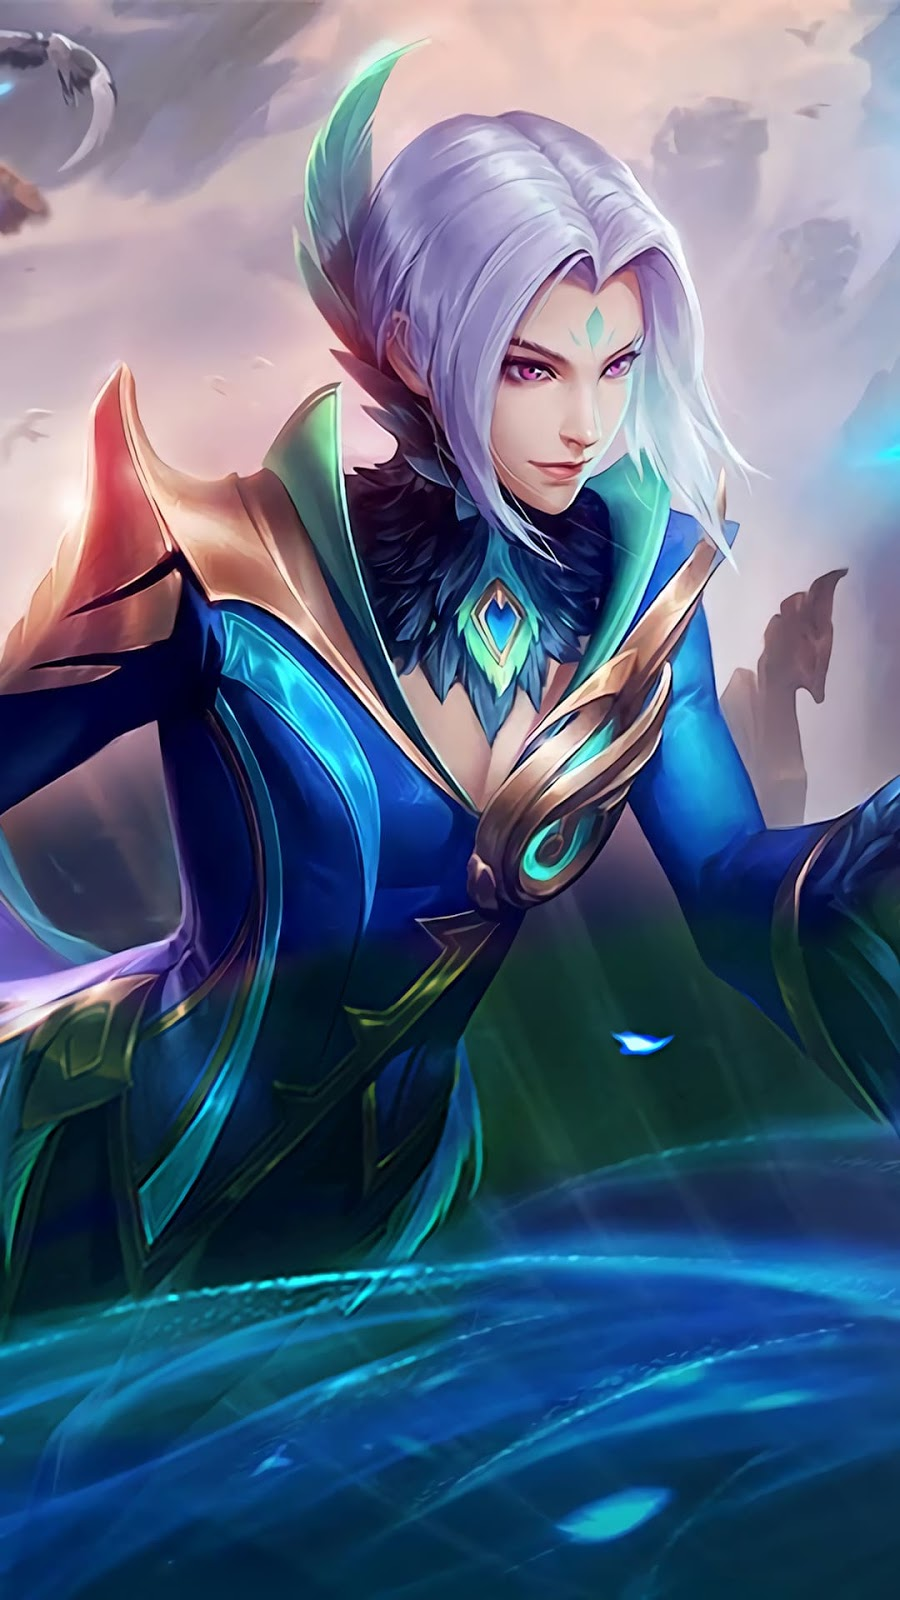 Wallpaper Ling Cyan Finch Skin Mobile Legends HD for Android and iOS